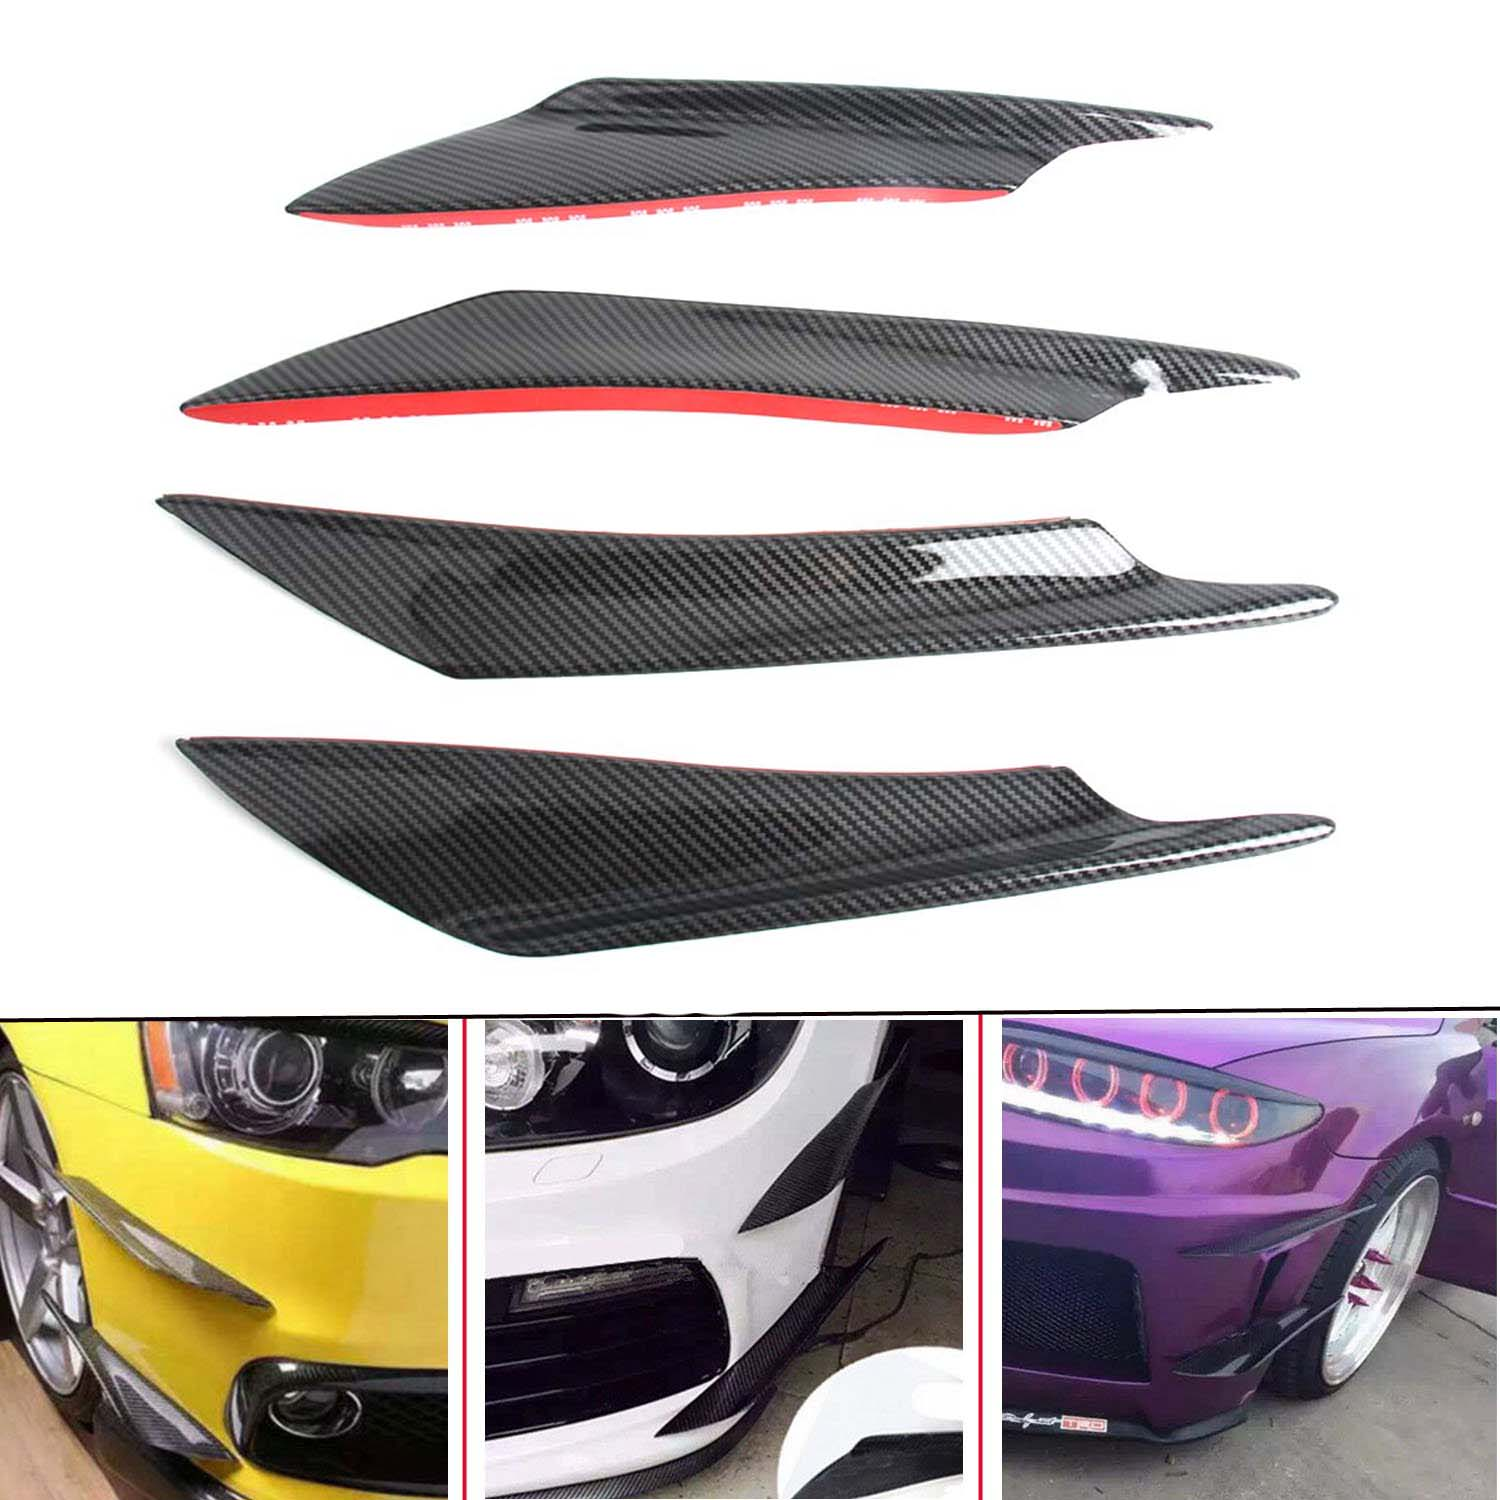 Universal Car Carbon Look Car Front Bumper Lip Diffuser Splitter Fins Body Spoiler Canards Valence Chin 4pcs/set